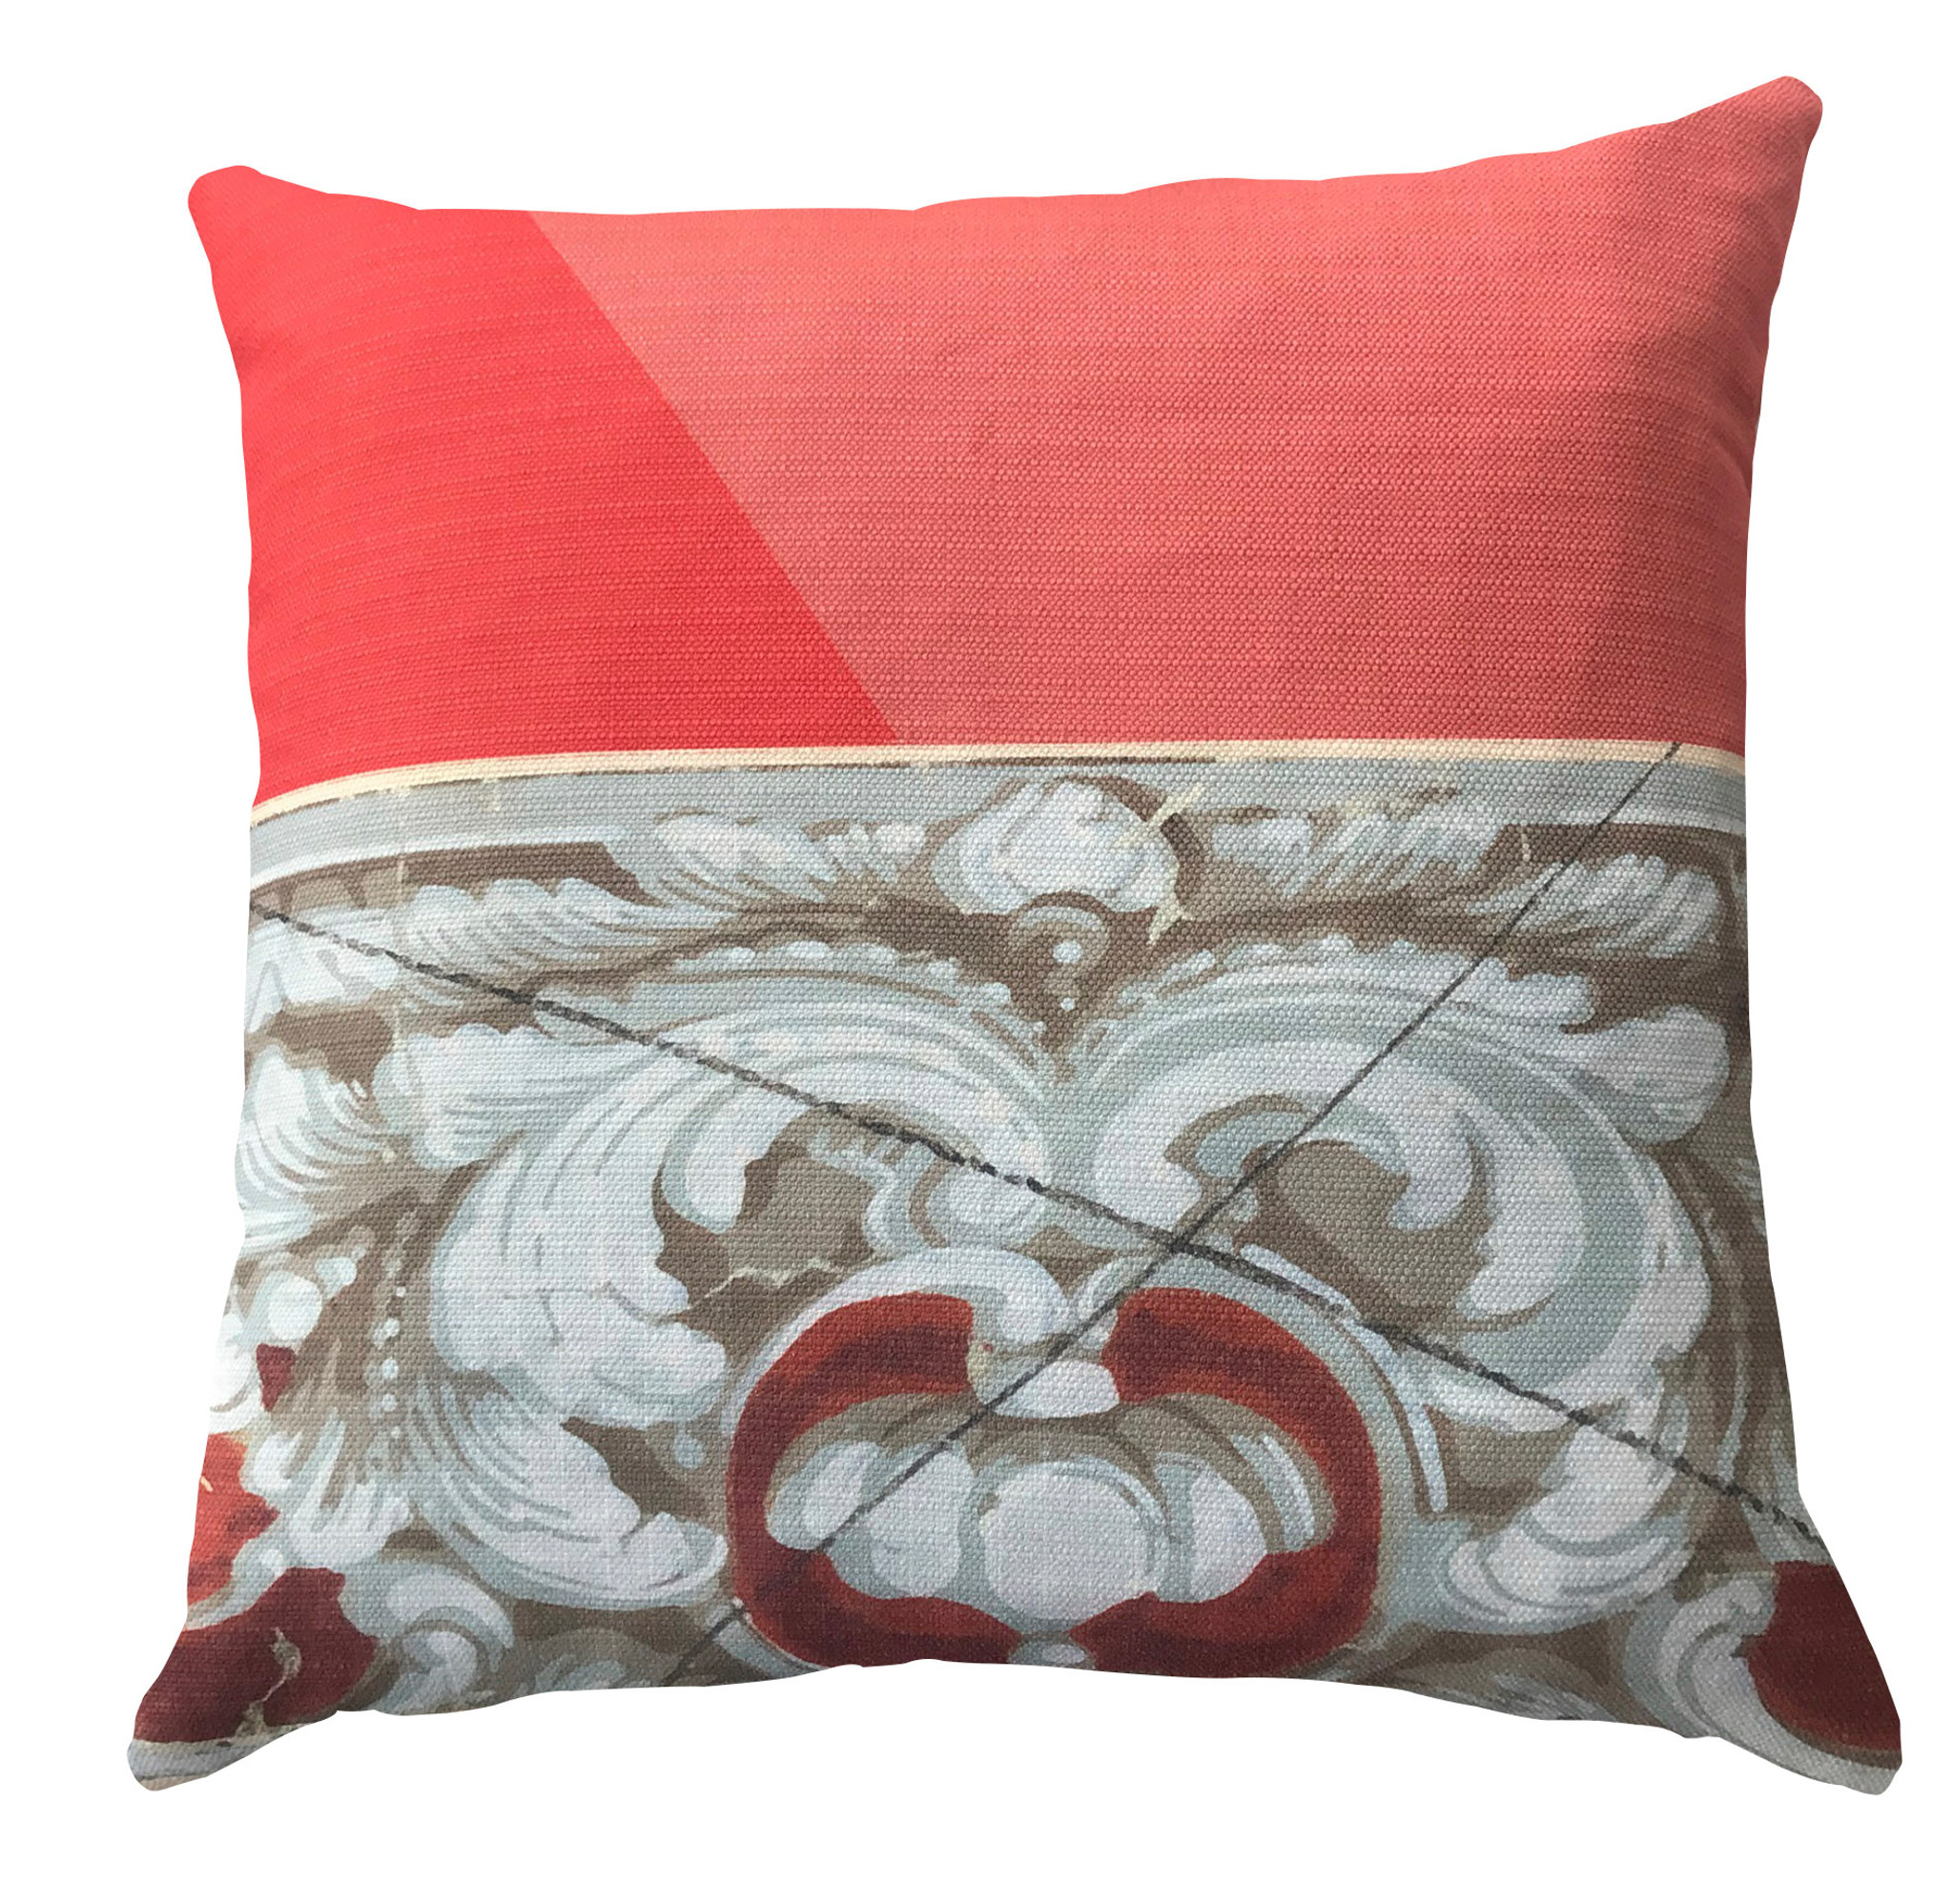 Cushion Cover - Spring Carnival - To Be or Not to Be